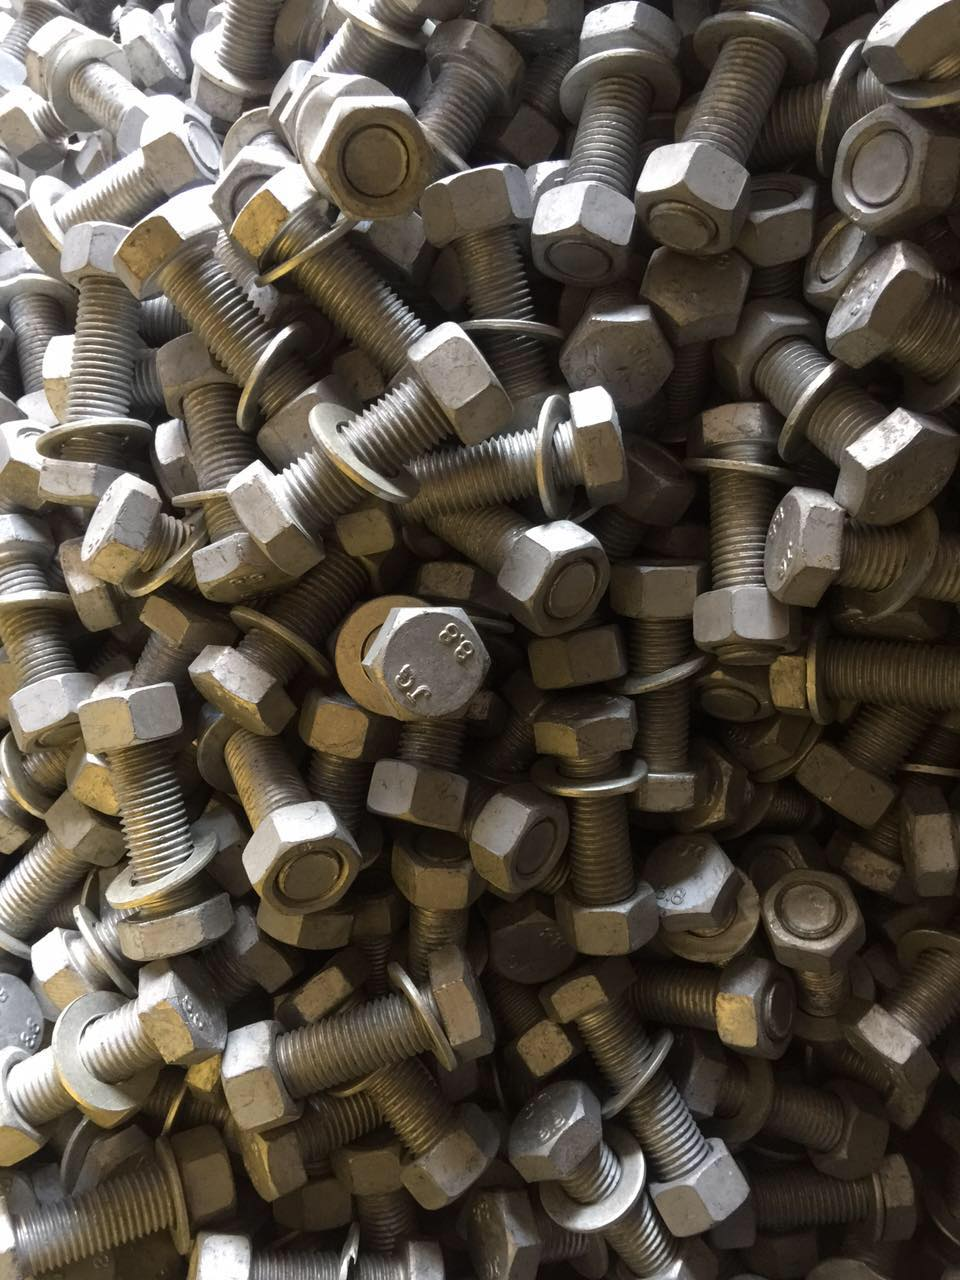 Grade 8.8 M20 Hot Dip Galvanized Hex Bolt with Nut